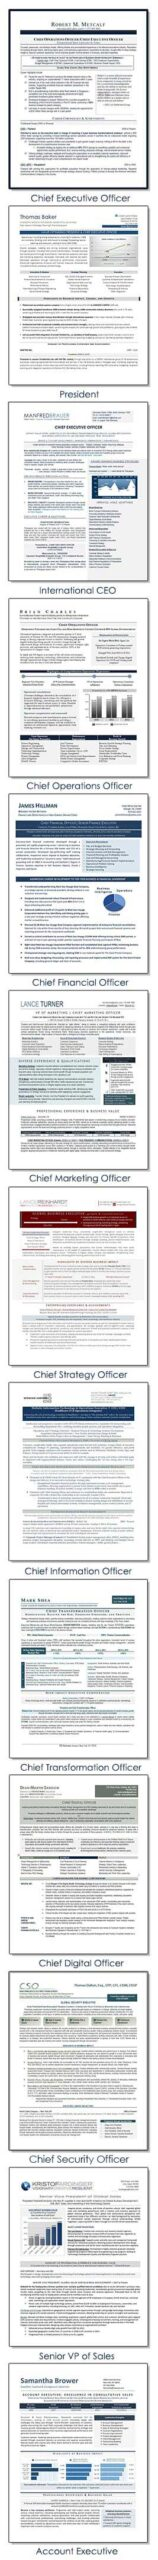 top executive resume writing services in and writer new moo templates for interview Resume Executive Resume Writer